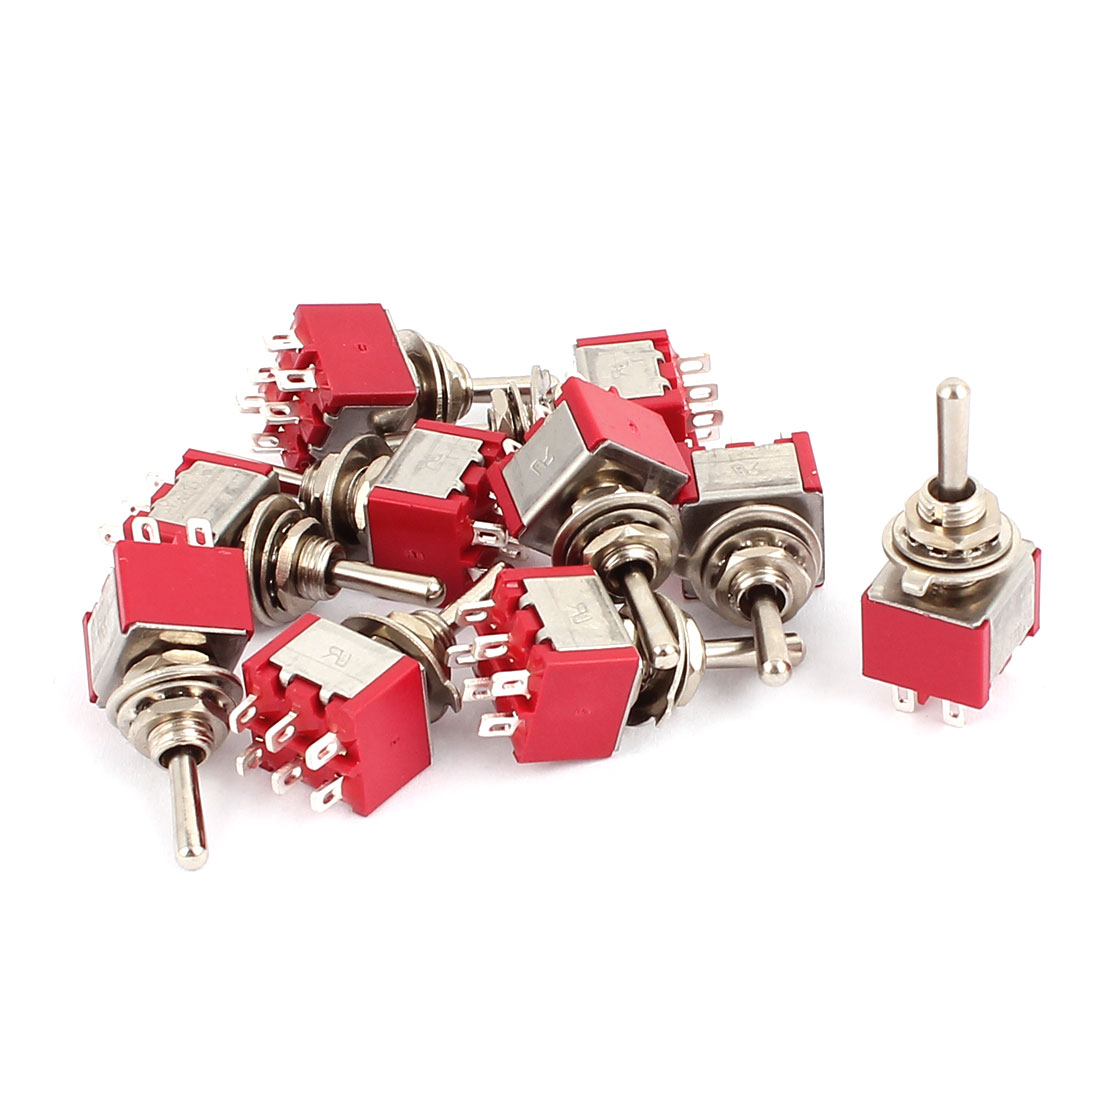 10 Pcs 250VAC 2A 120VAC 5A 6 Terminals DPDT 3 Position ON/OFF/ON Momentary Toggle Switch